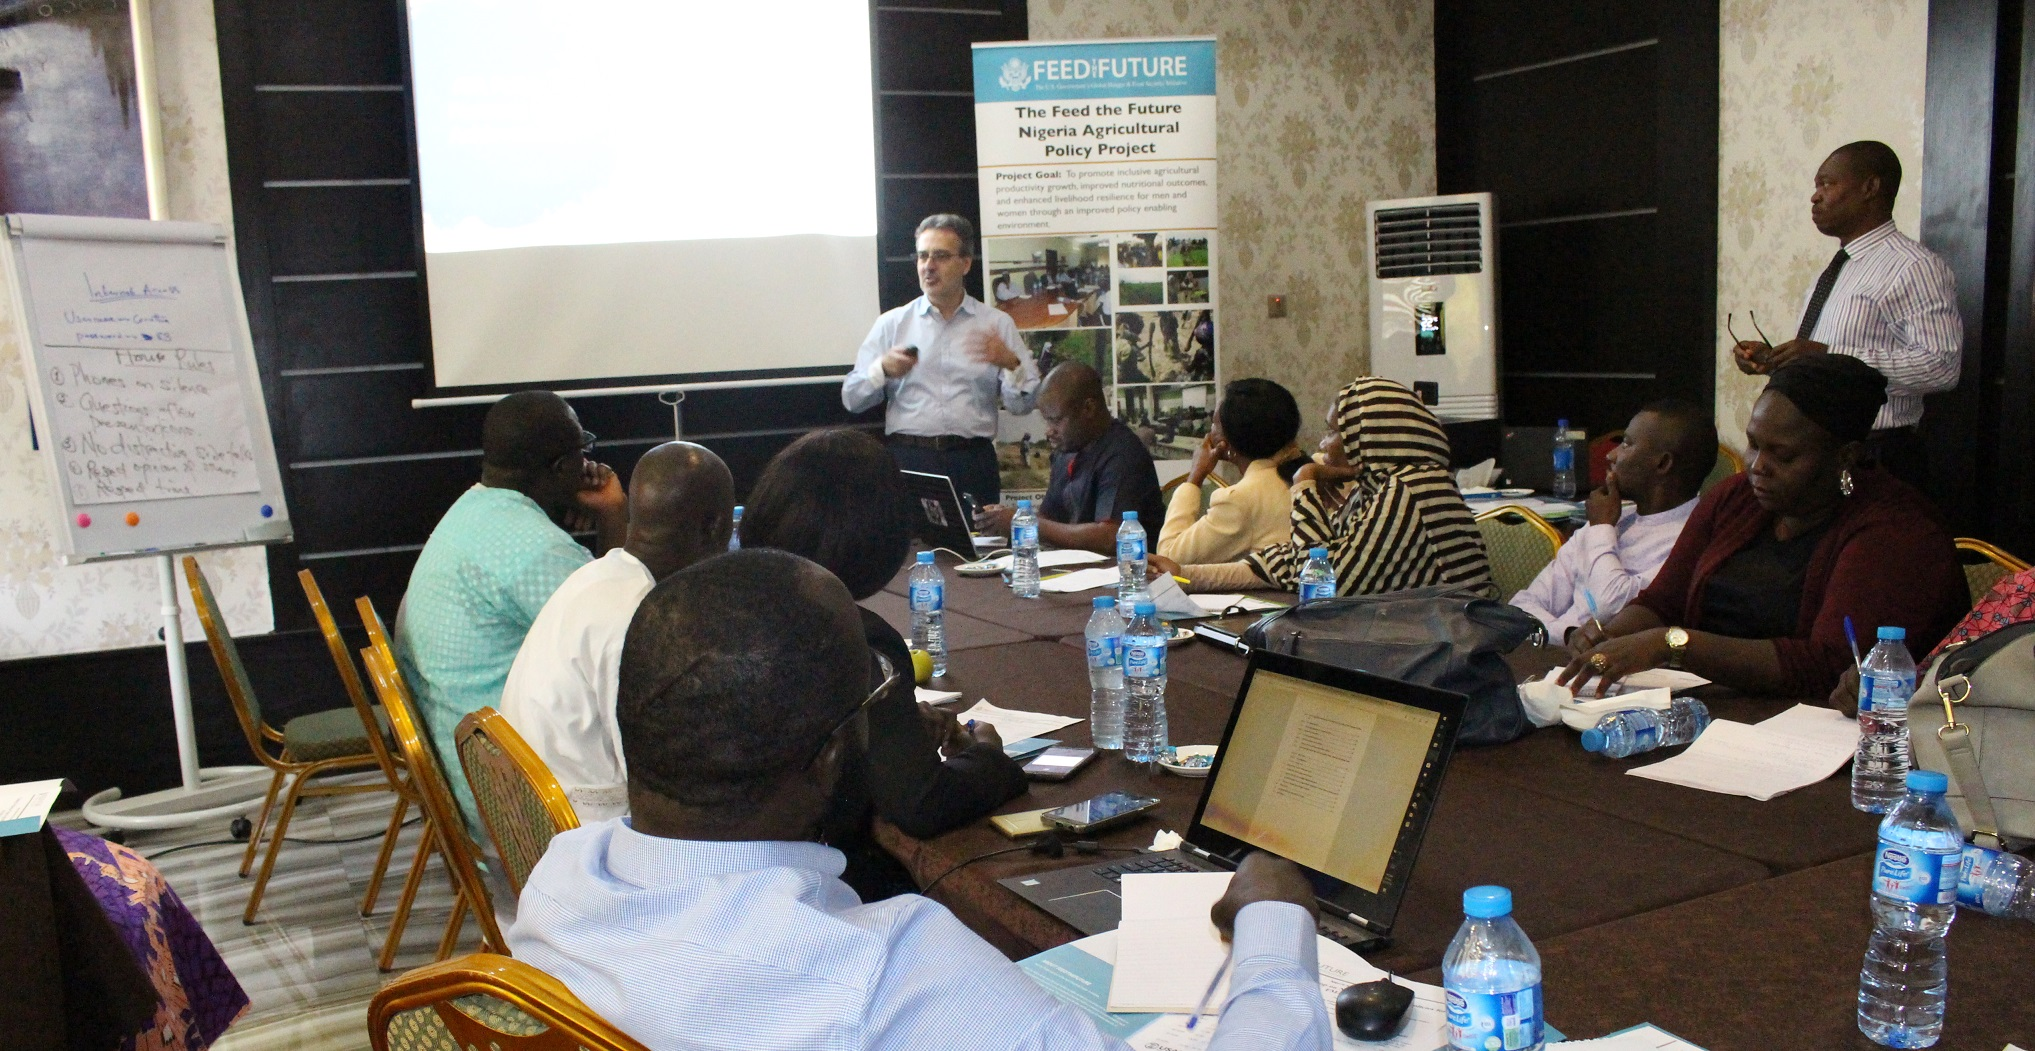 Training towards a stronger agricultural policy framework for Nigeria